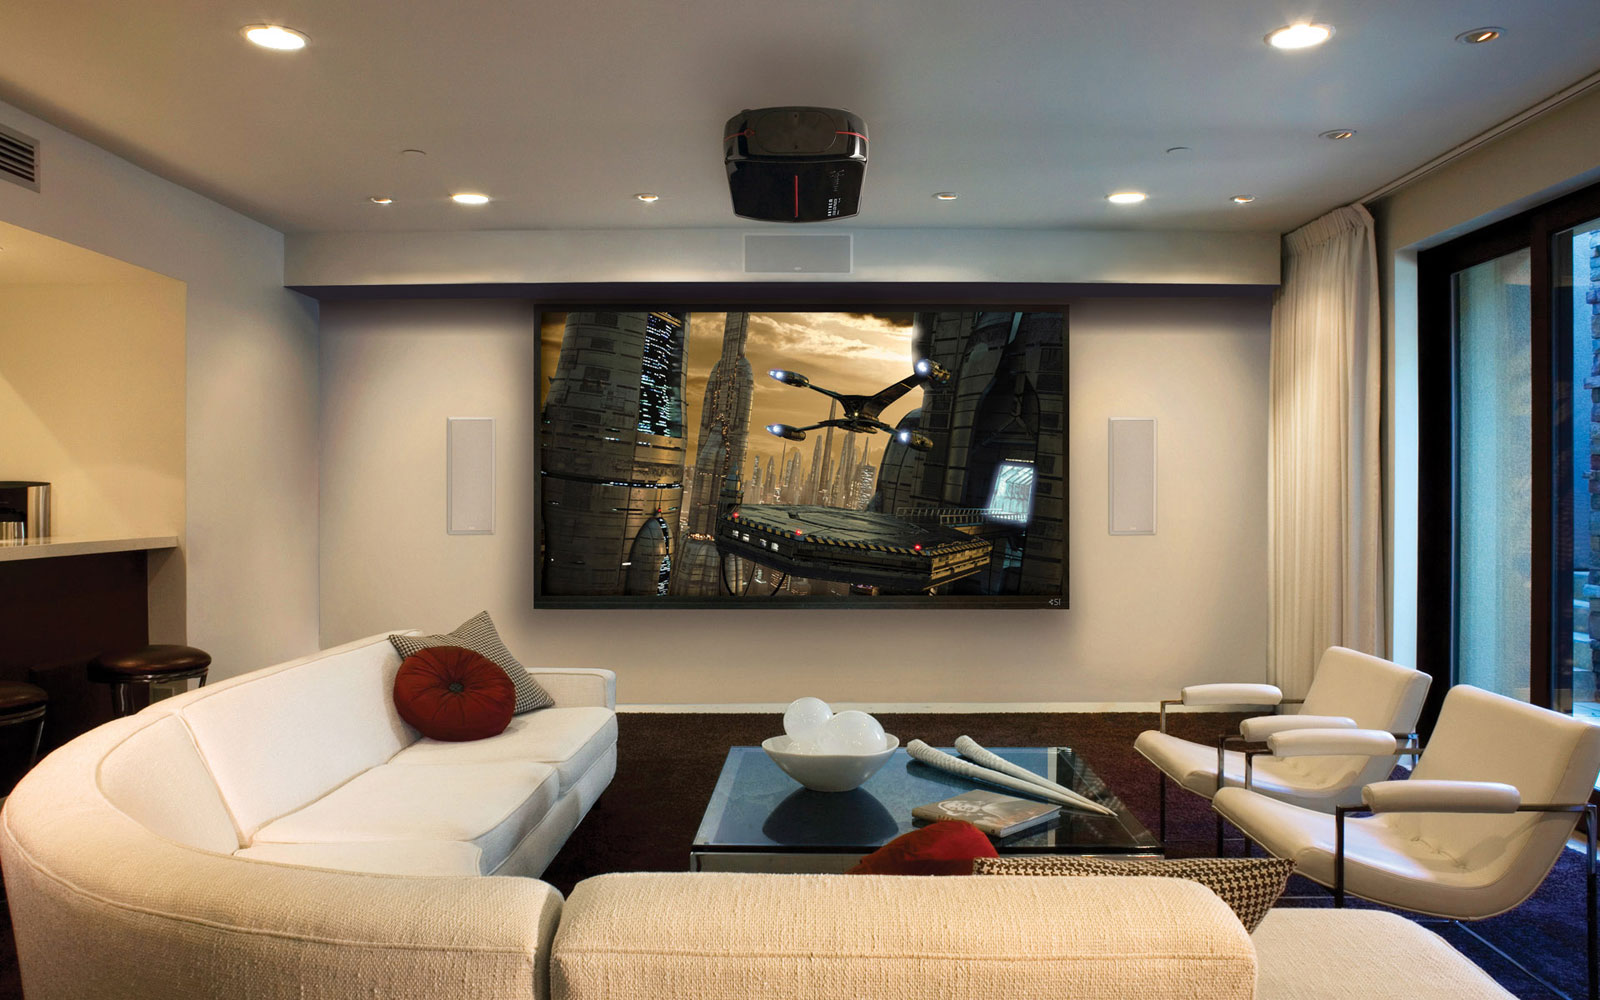 Do You Dream of Living Room Theaters? Make it Real Here